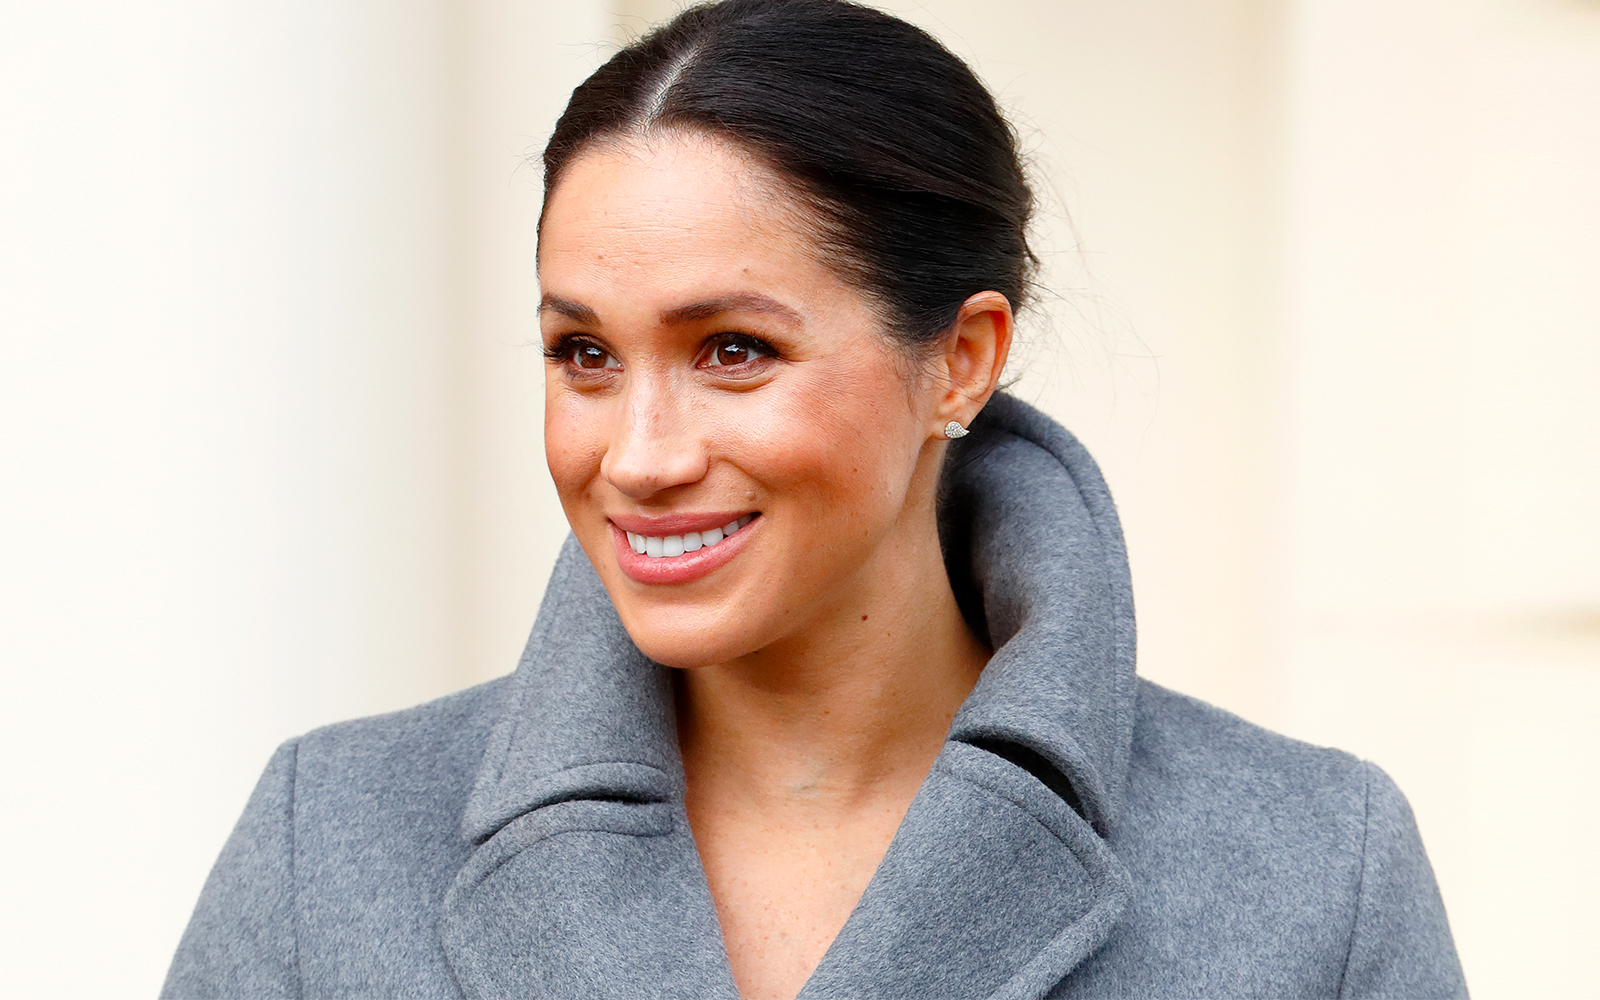 Meghan Markle's $8 Trick for Cleansing Her Face on the Go